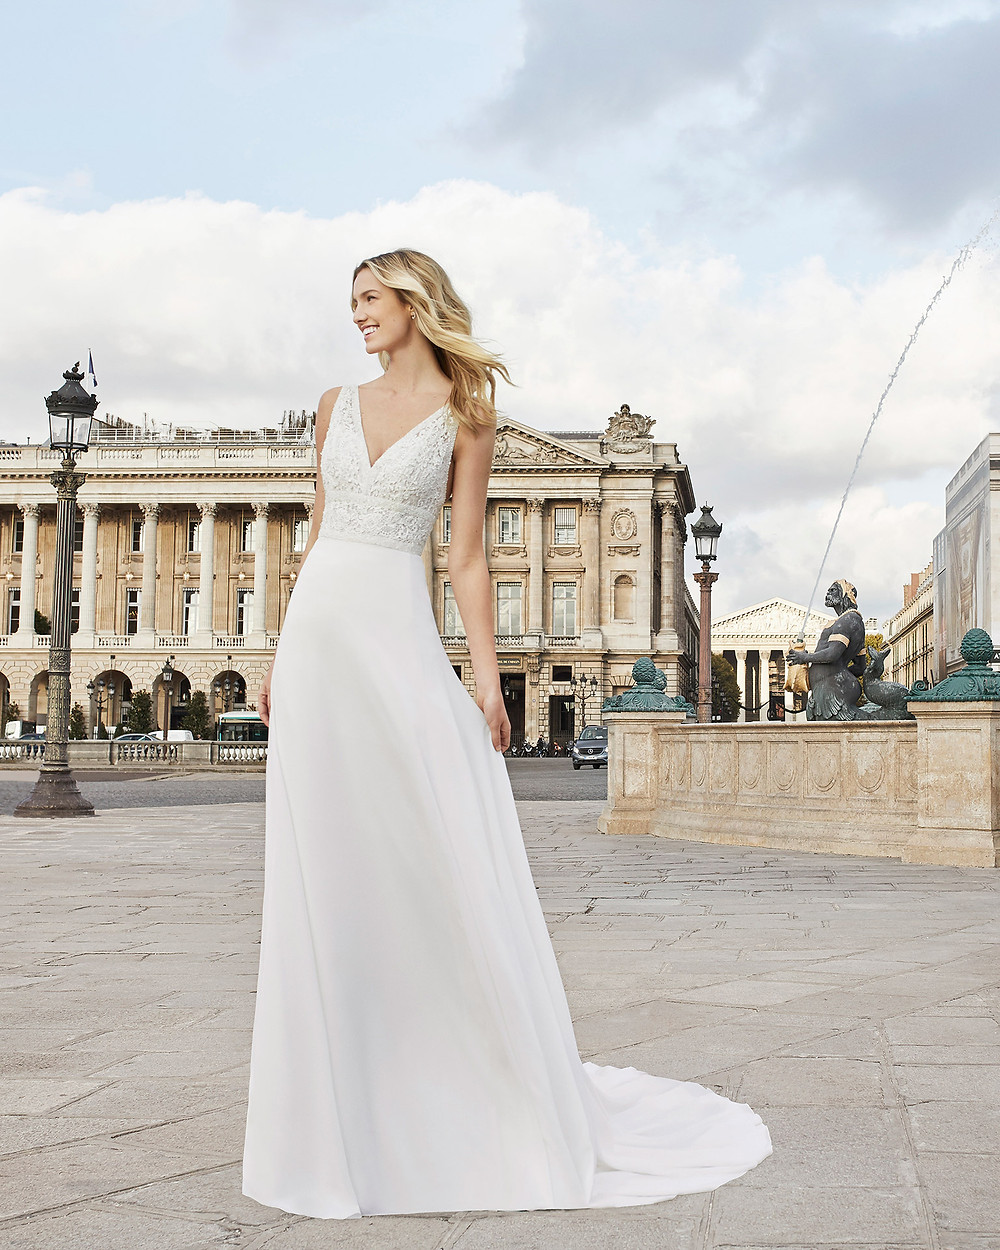 An Aire Barcelona 2020 crepe A-line wedding dress with a sparkly top and a v neckline